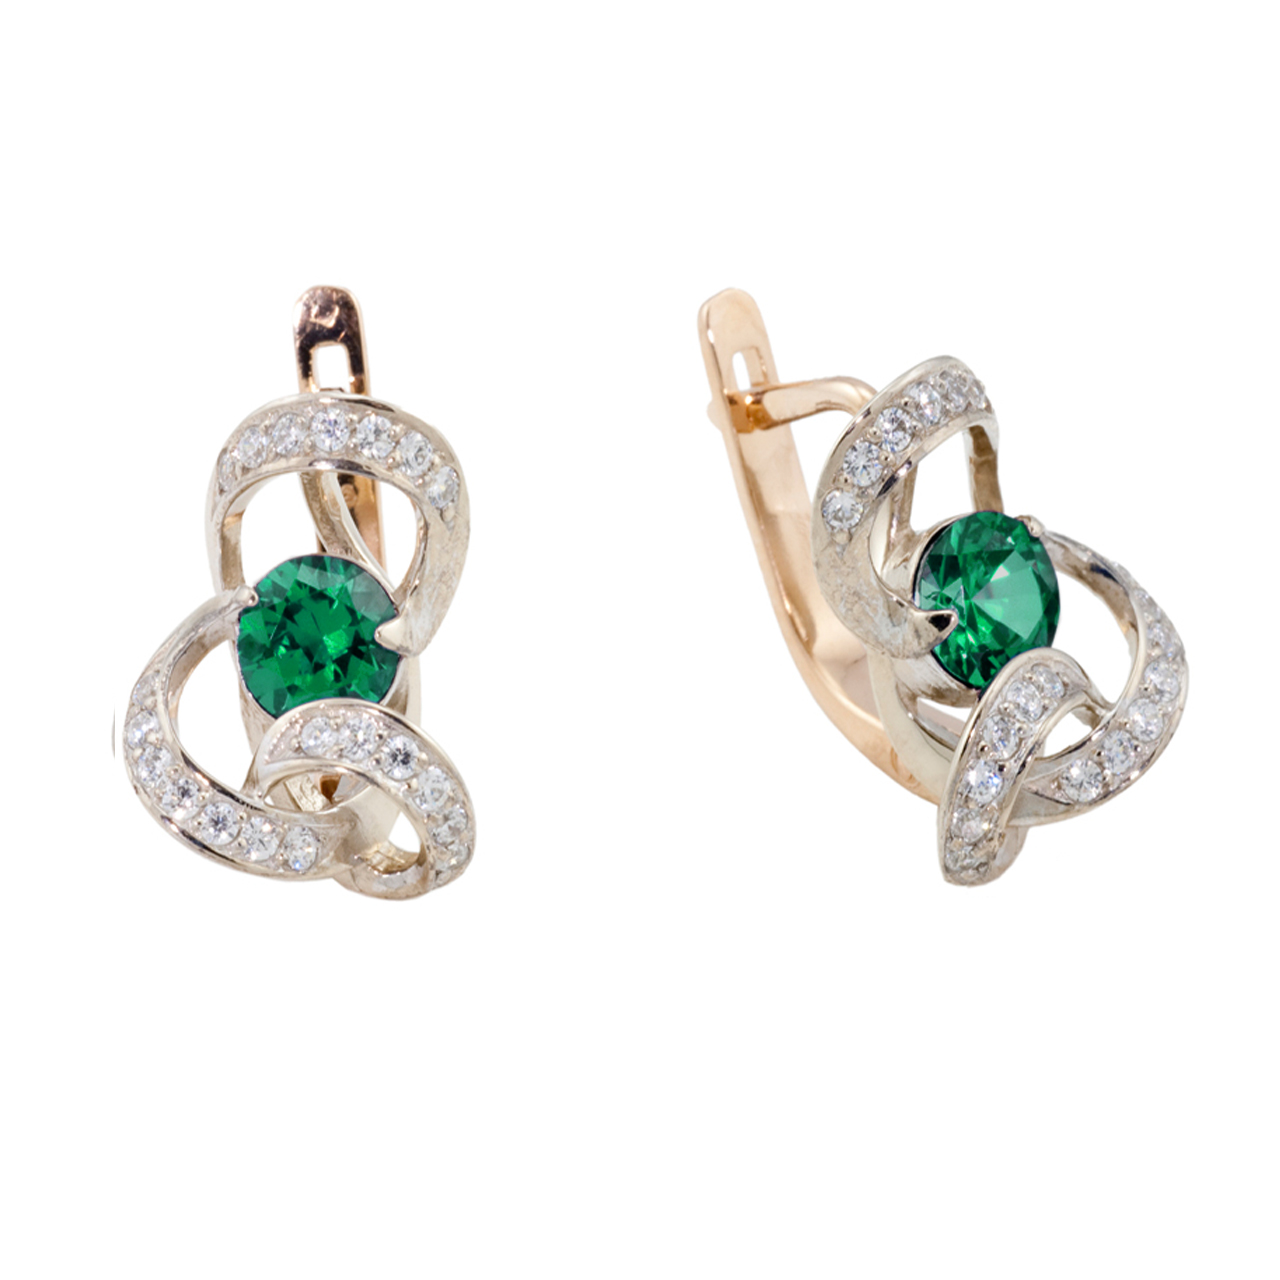 Russian emerald gold earrings 1